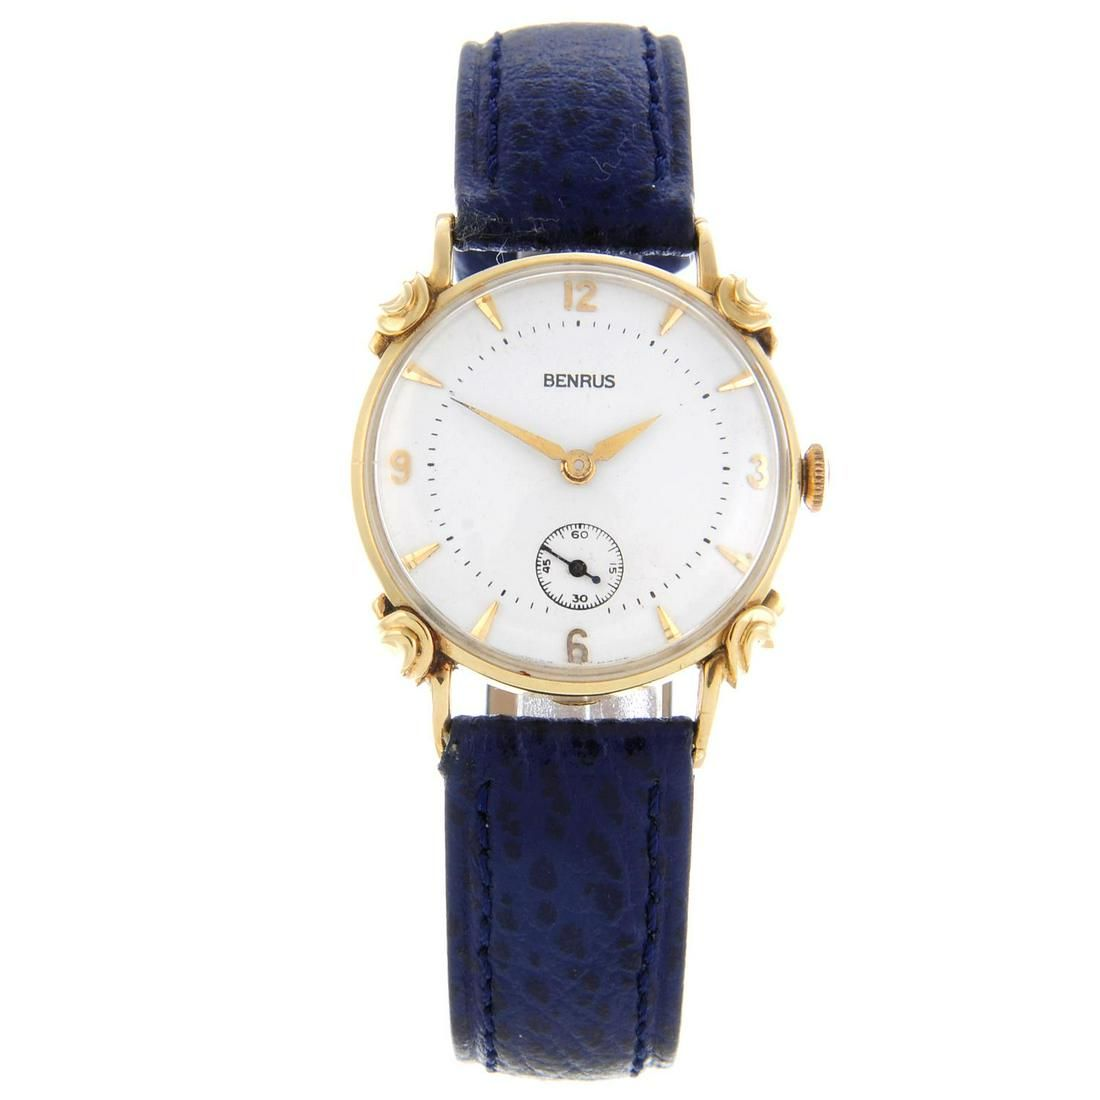 BENRUS - a mid-size wrist watch. Yellow metal case,